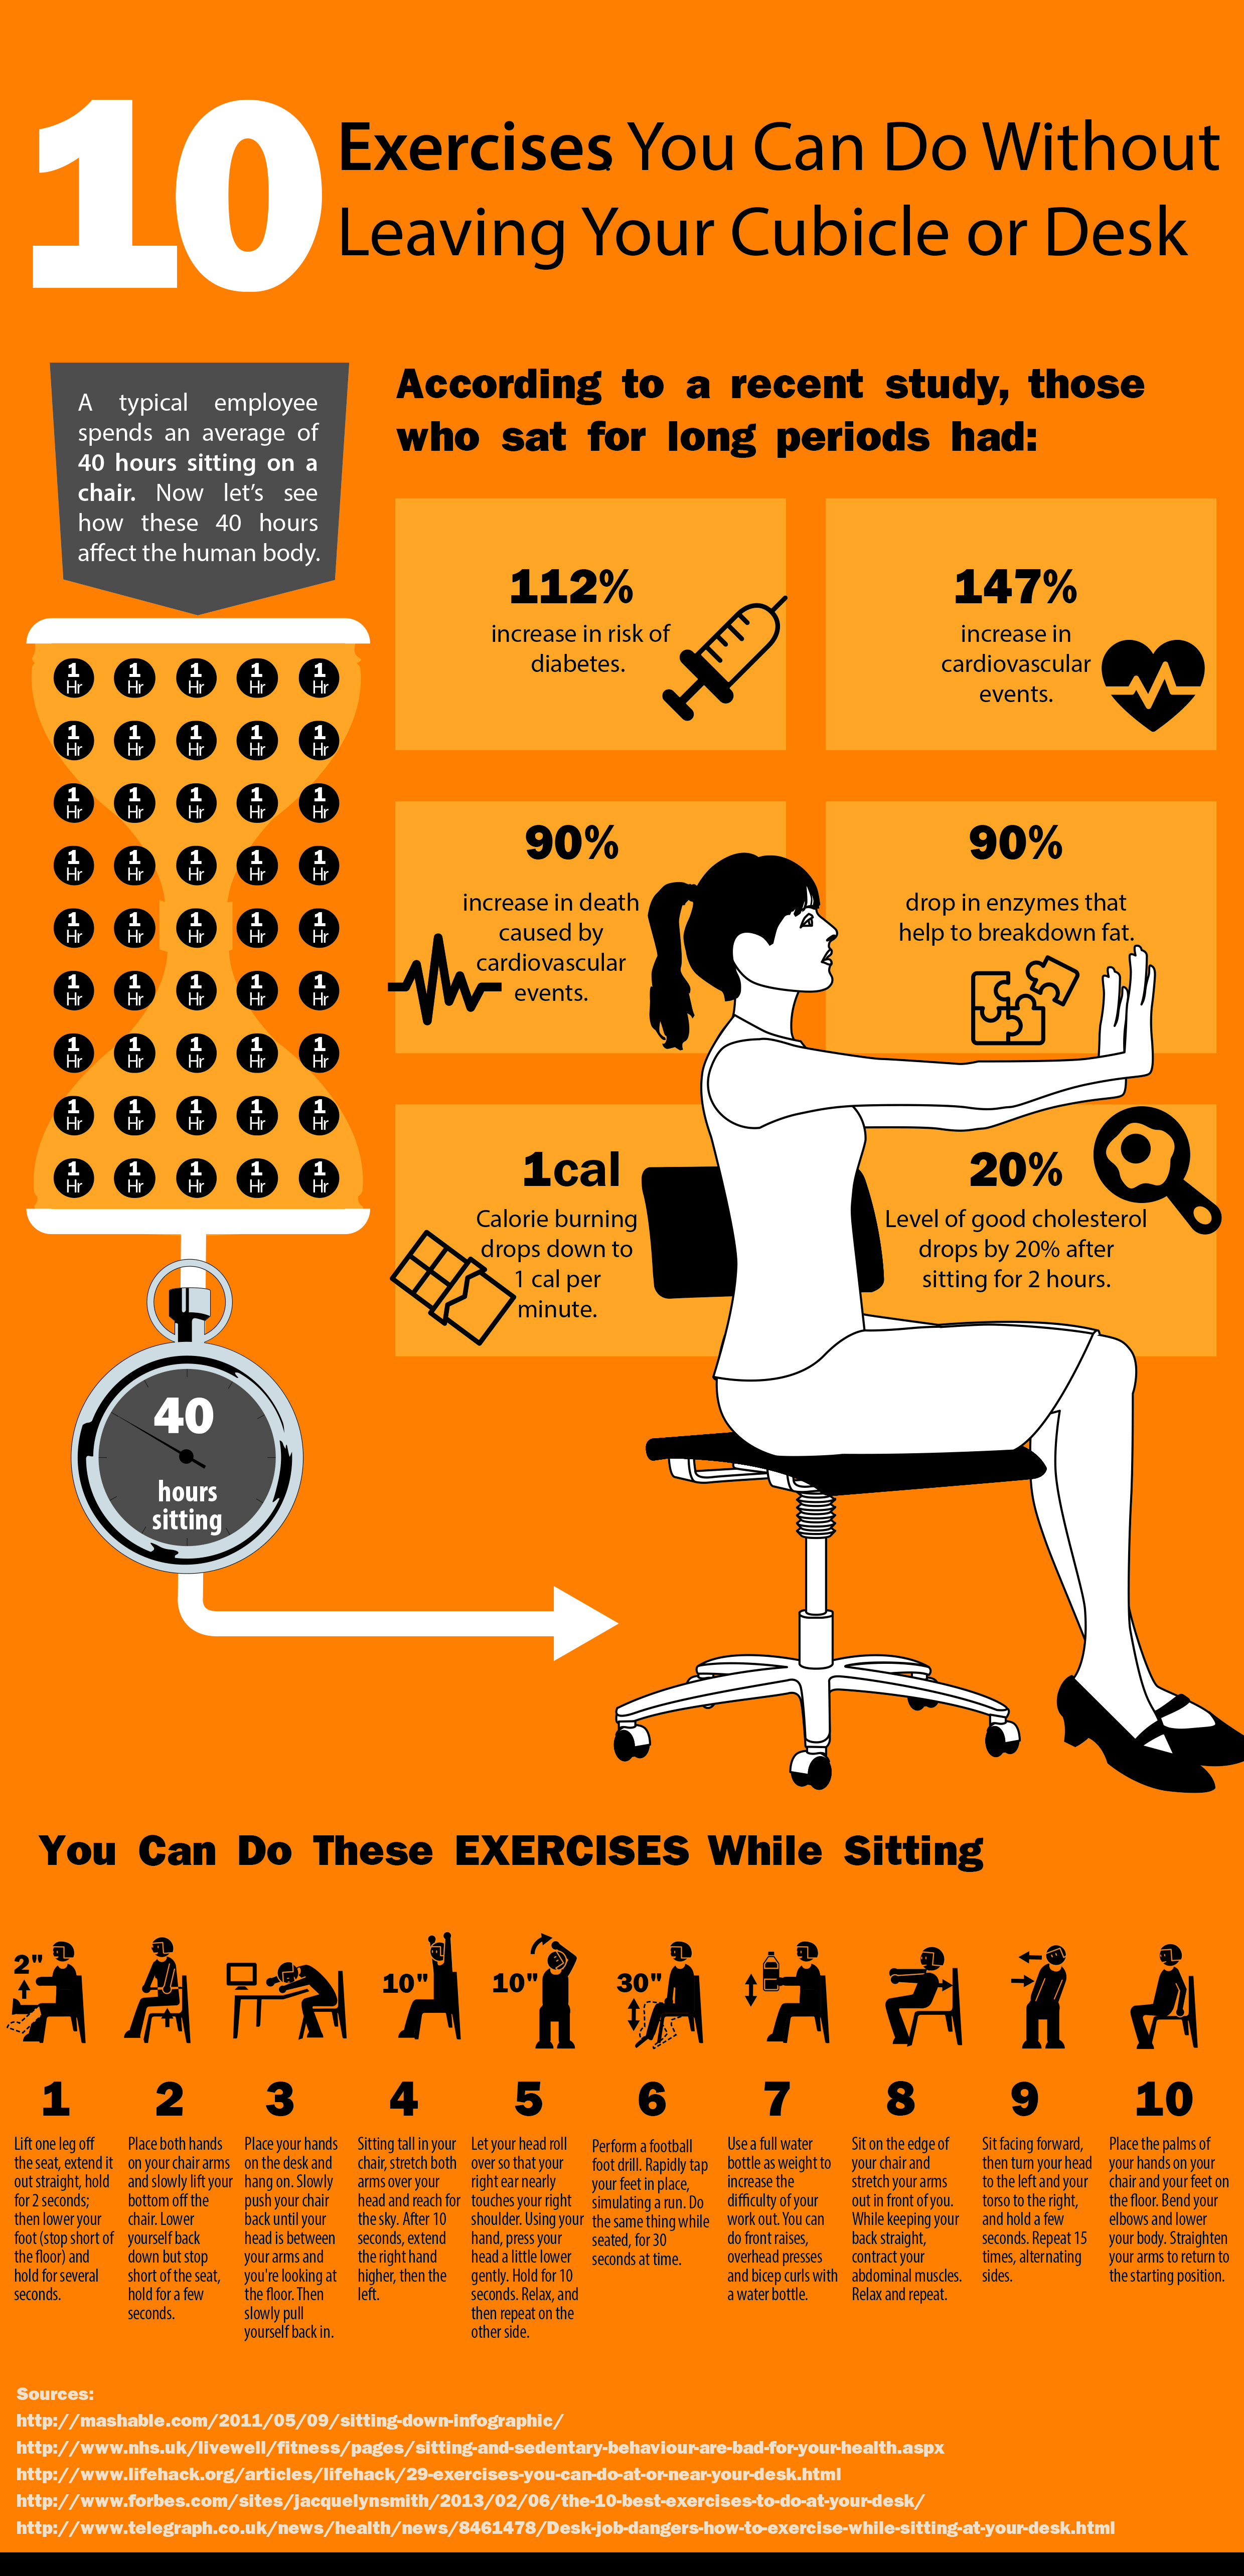 ergonomic chair without arms little girl table and set 10 exercises you can do at your cubicle or desk - yeg fitness